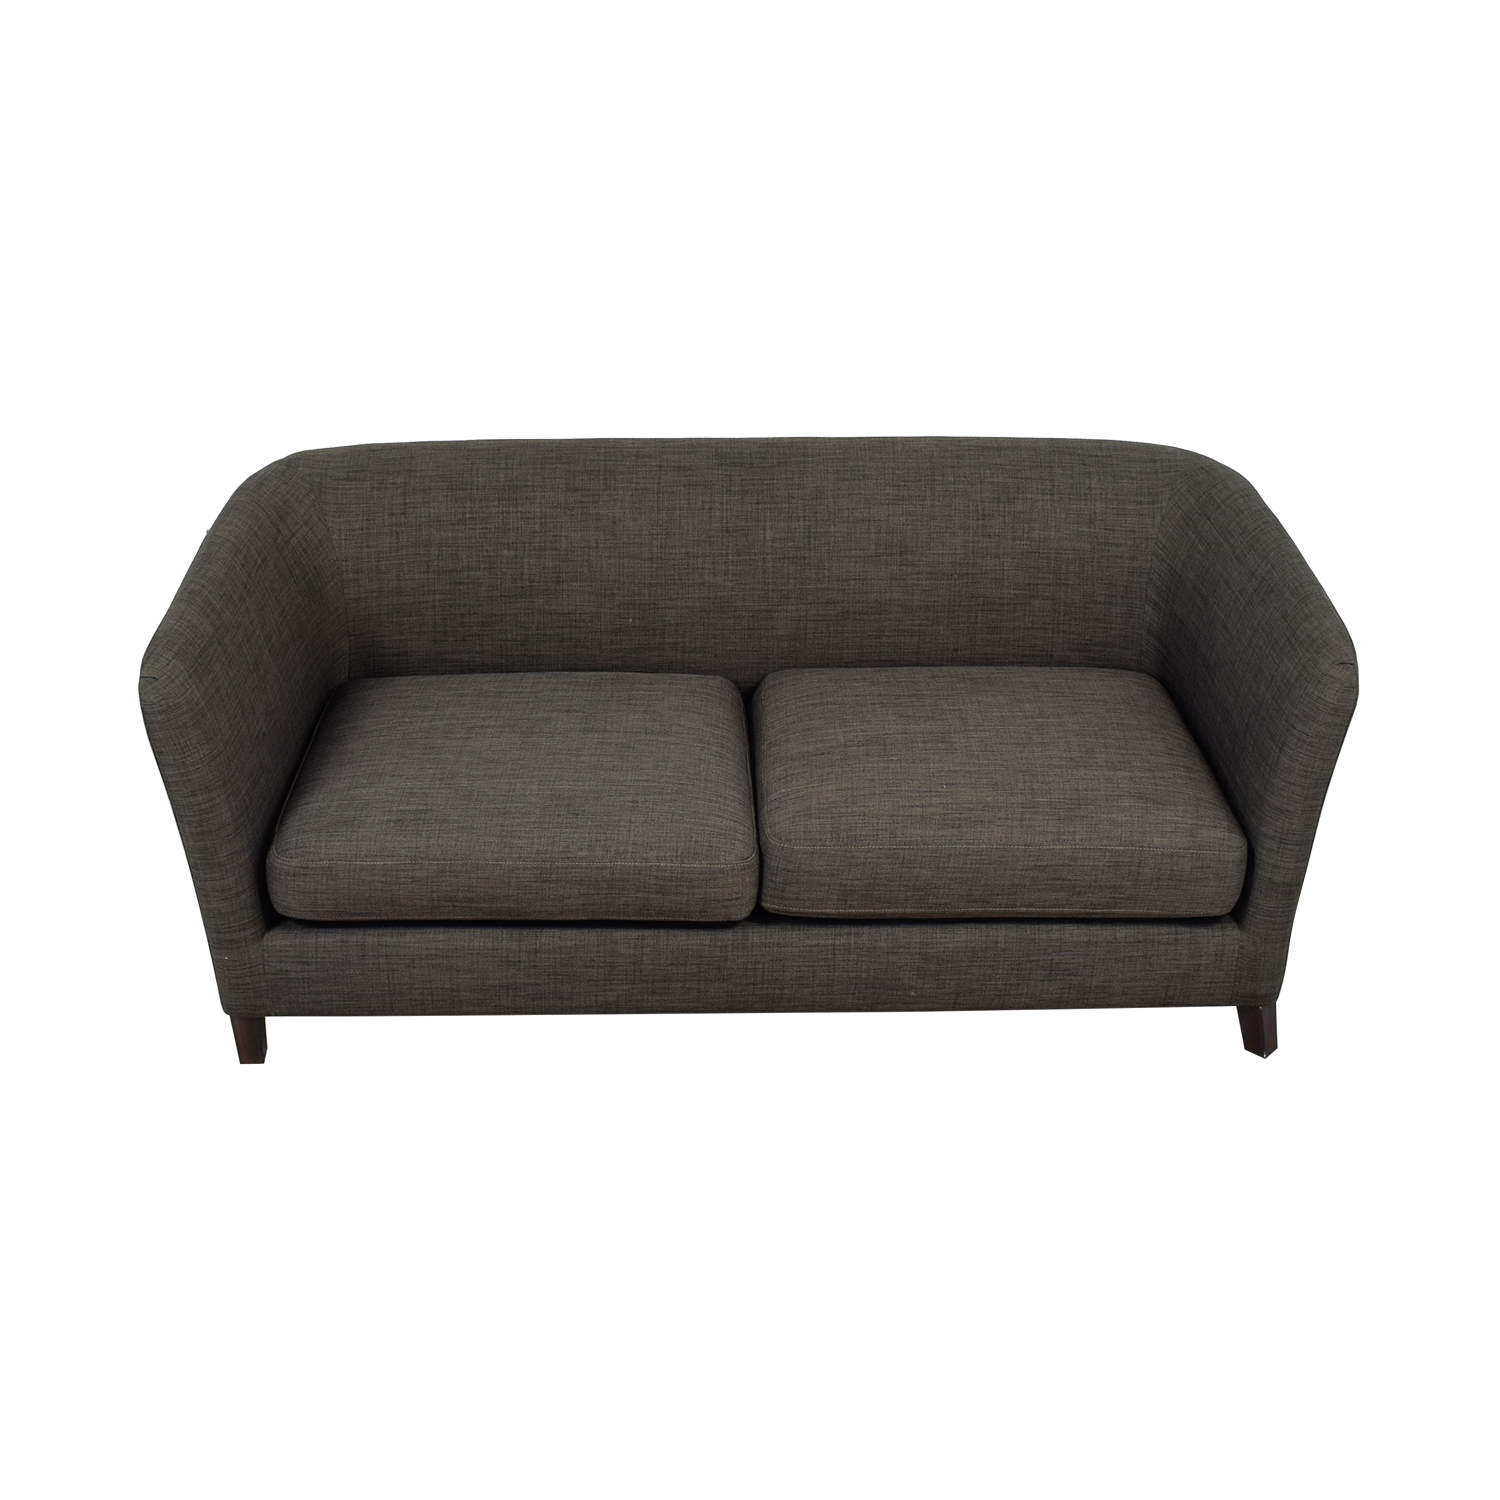 Crate & Barrel Ollie Gray Sofa Crate & Barrel